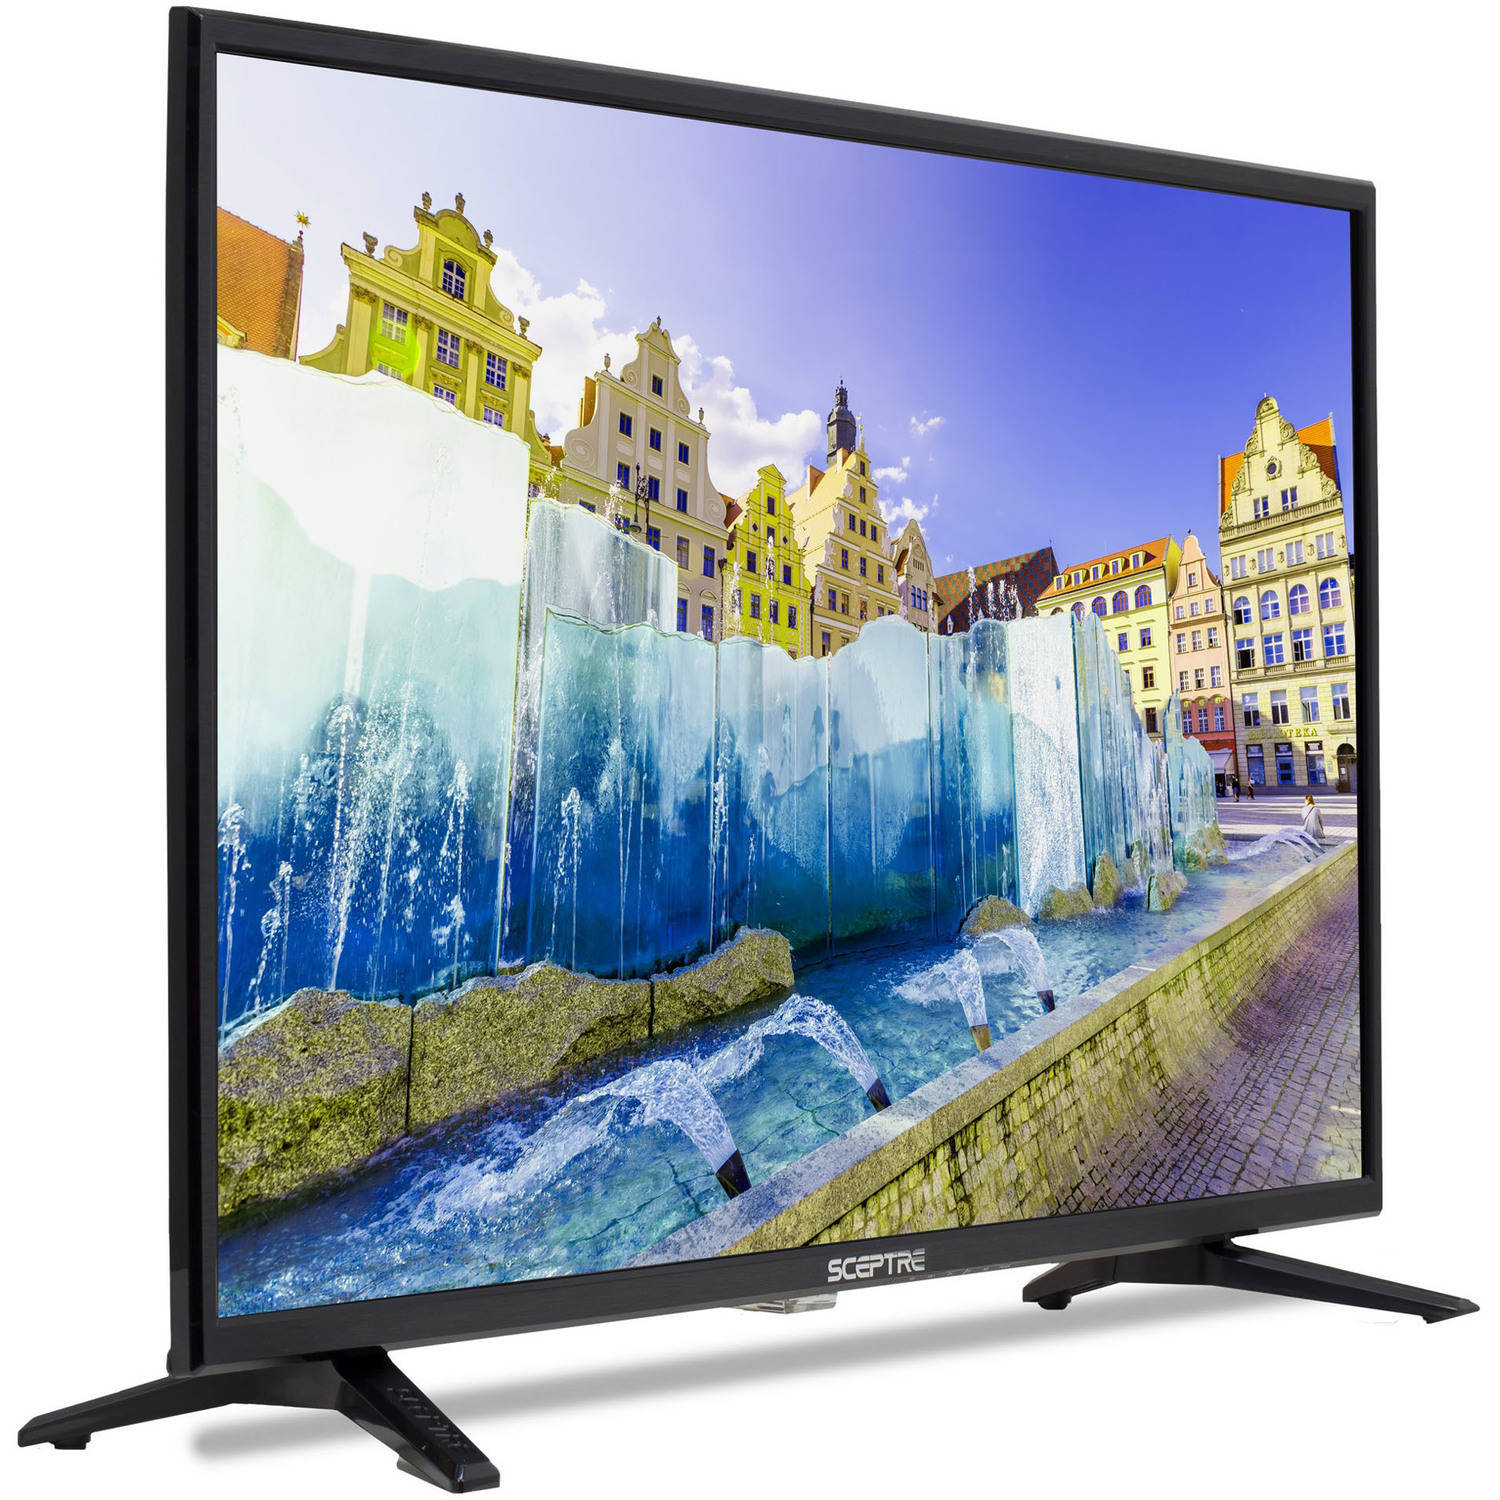 sceptre 32 hd 720p led lcd tv flat screen monitor with 2 hdmi and usb wallmount auctions buy. Black Bedroom Furniture Sets. Home Design Ideas